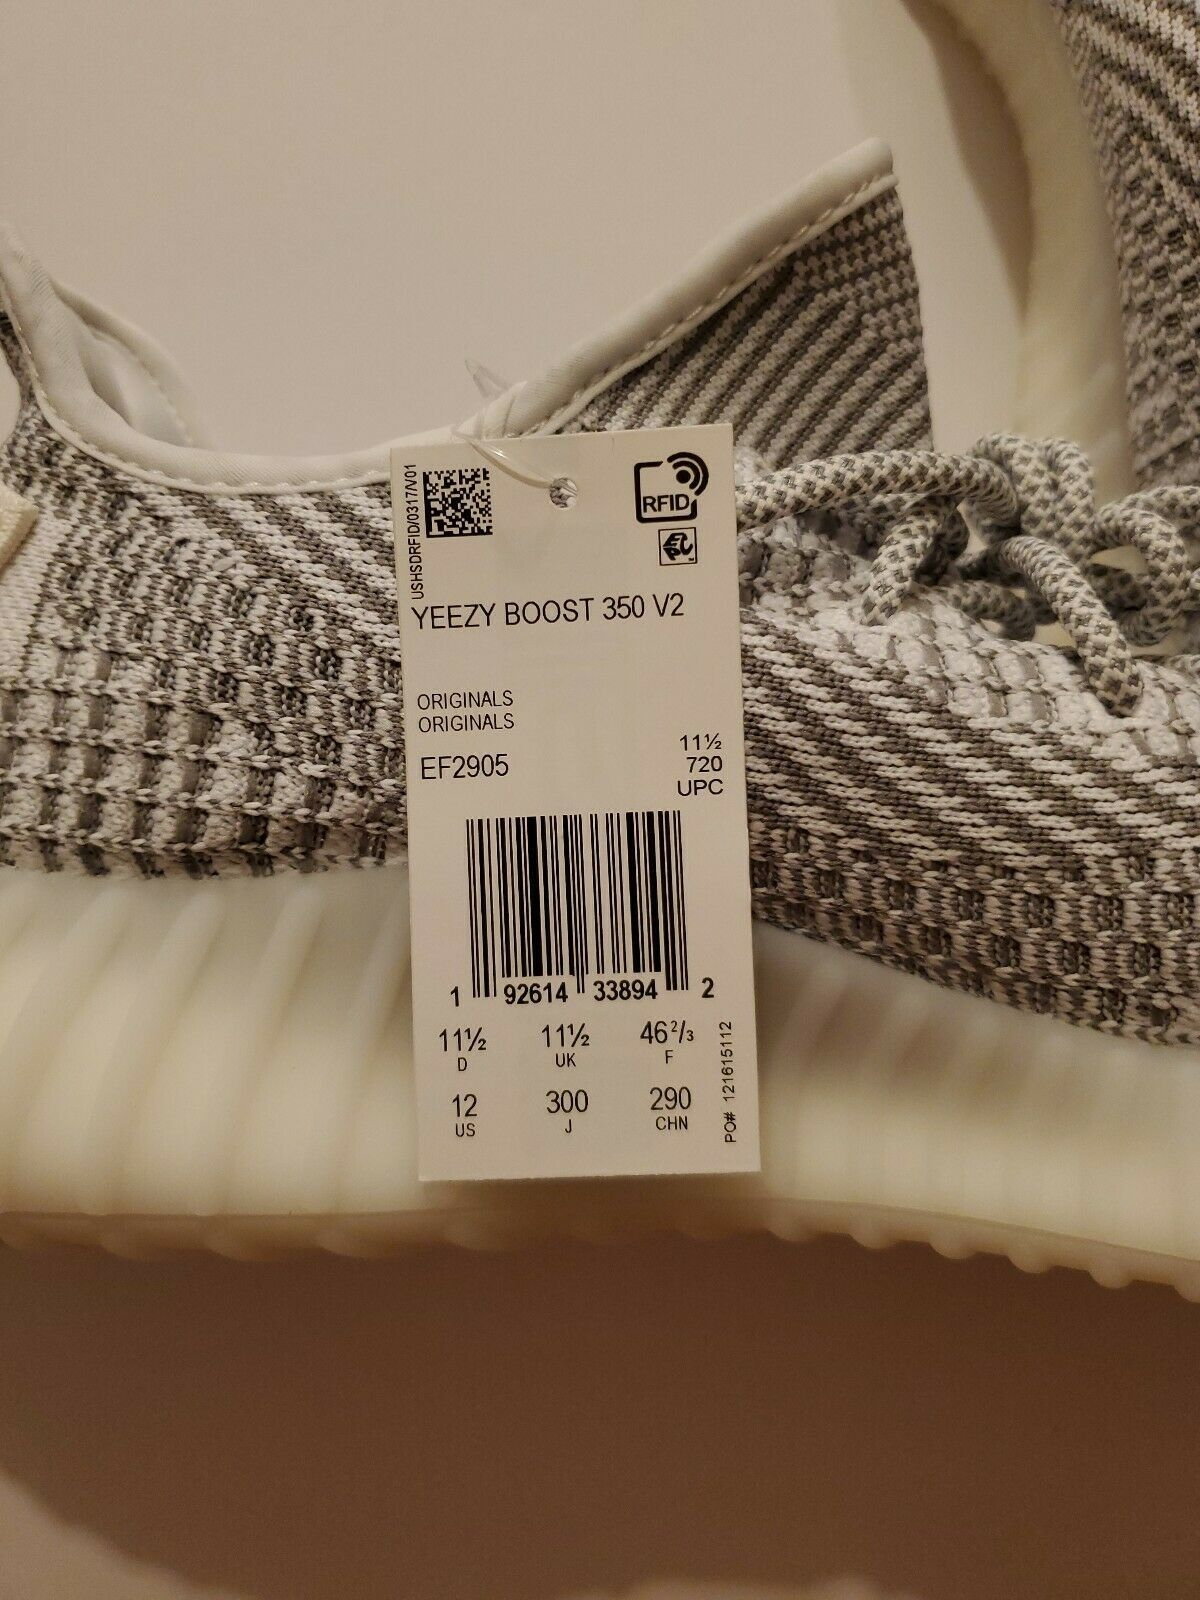 Adidas Yeezy Boost 350 V2 Static EF2905 size 12 non reflective 100% authentic image 8